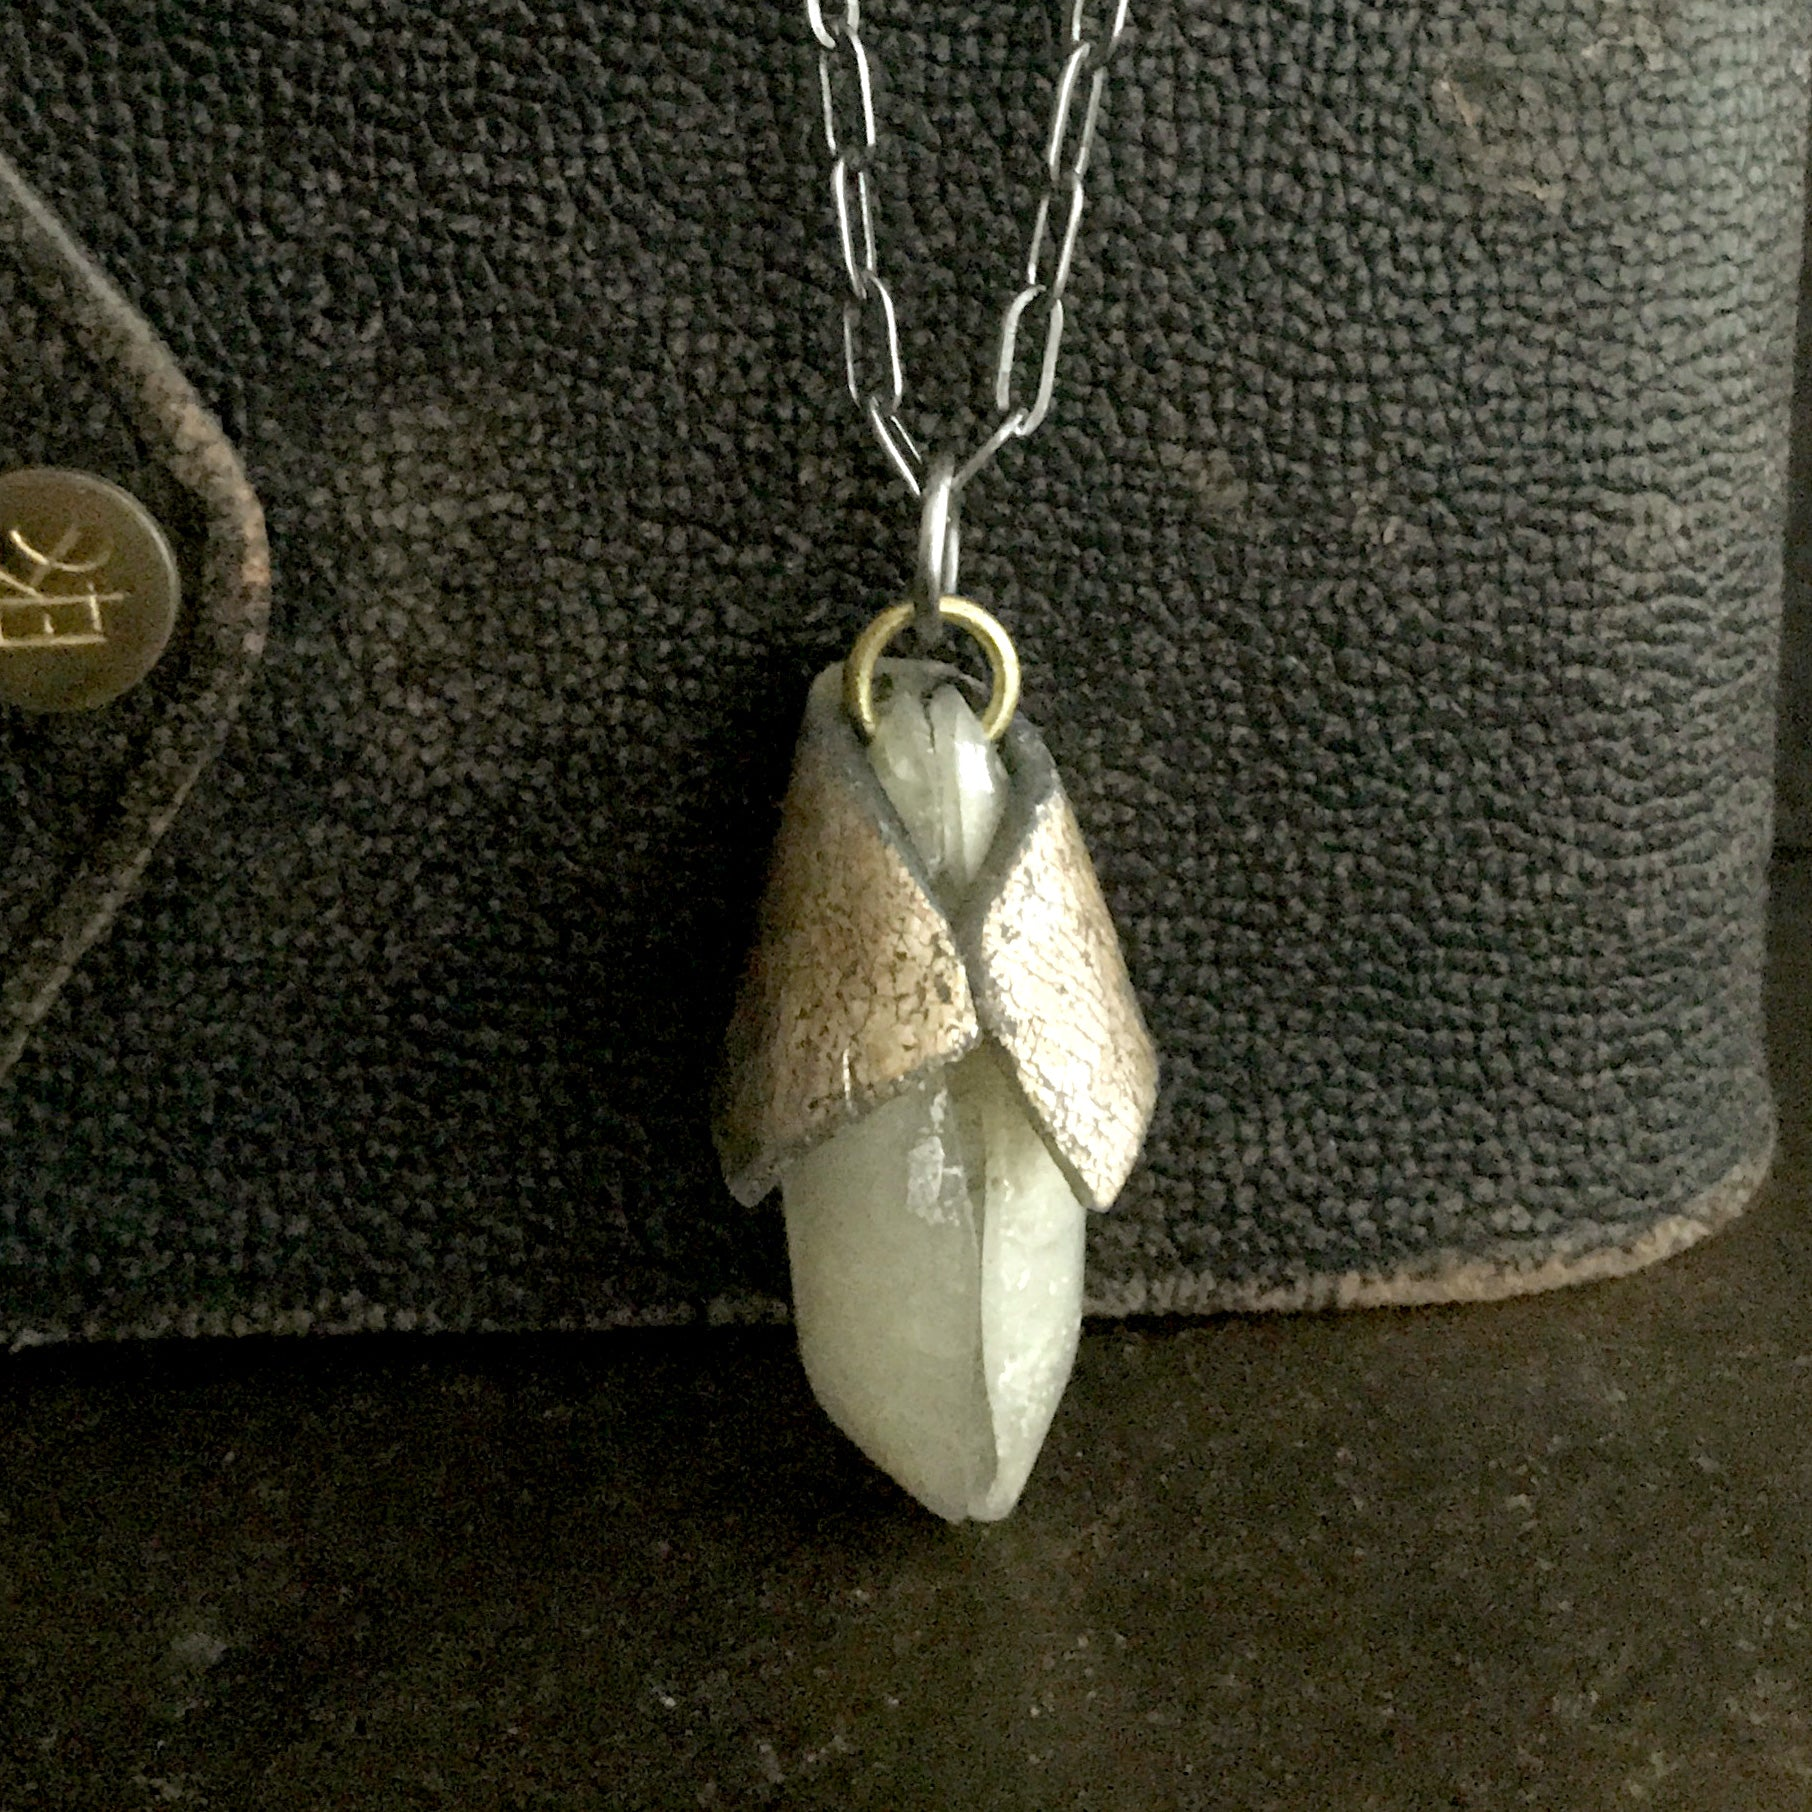 Trunk Show: Sarah Wilbanks Jewelry, February 9th, 12-4pm